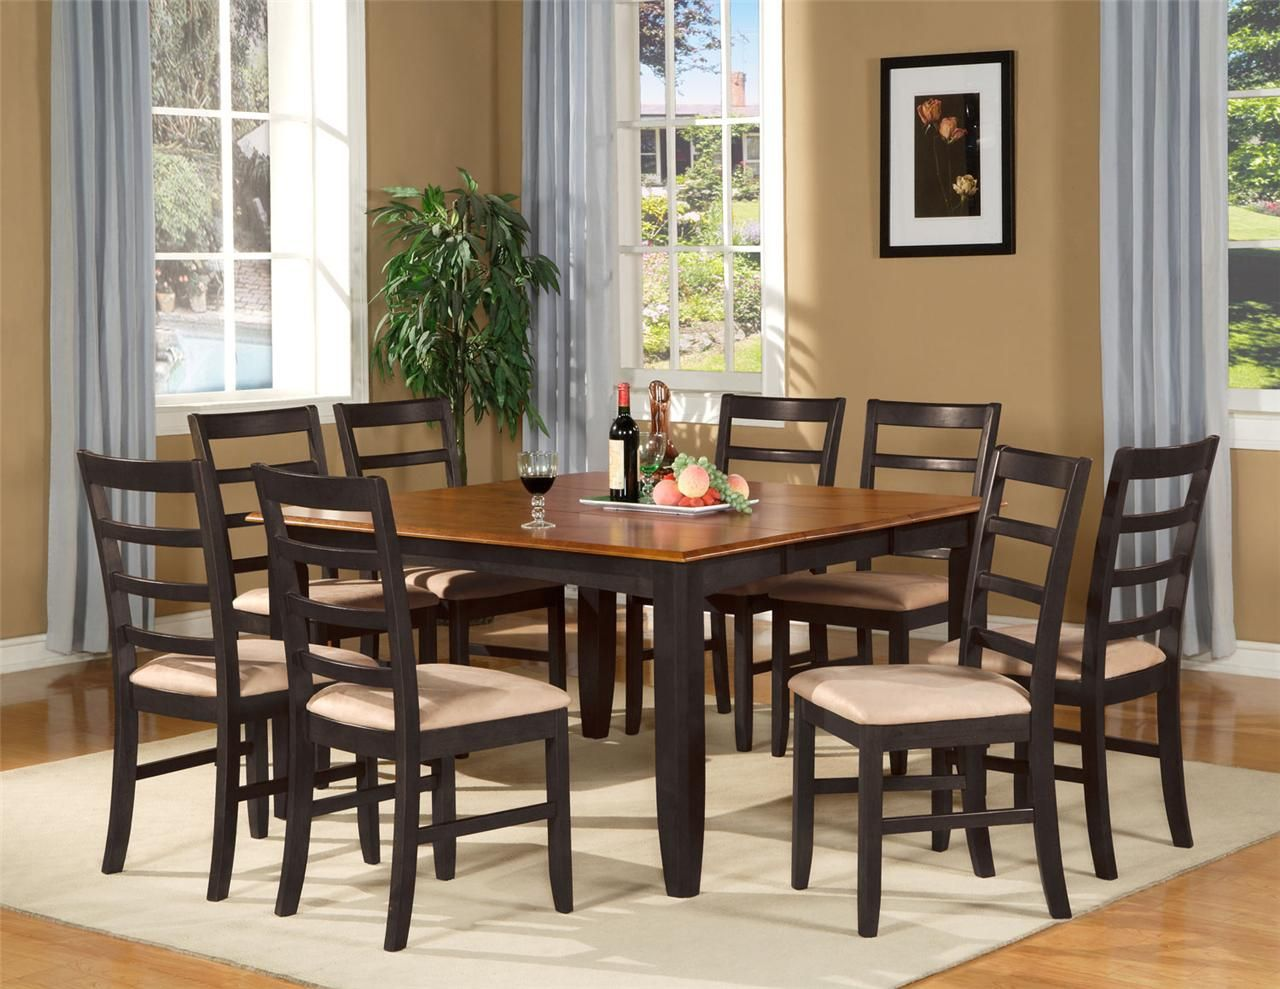 9 Pc Square Dinette Dining Room Table Set And 8 Chairs Dining Room Table Set Square Dining Room Table Dining Room Furniture Sets